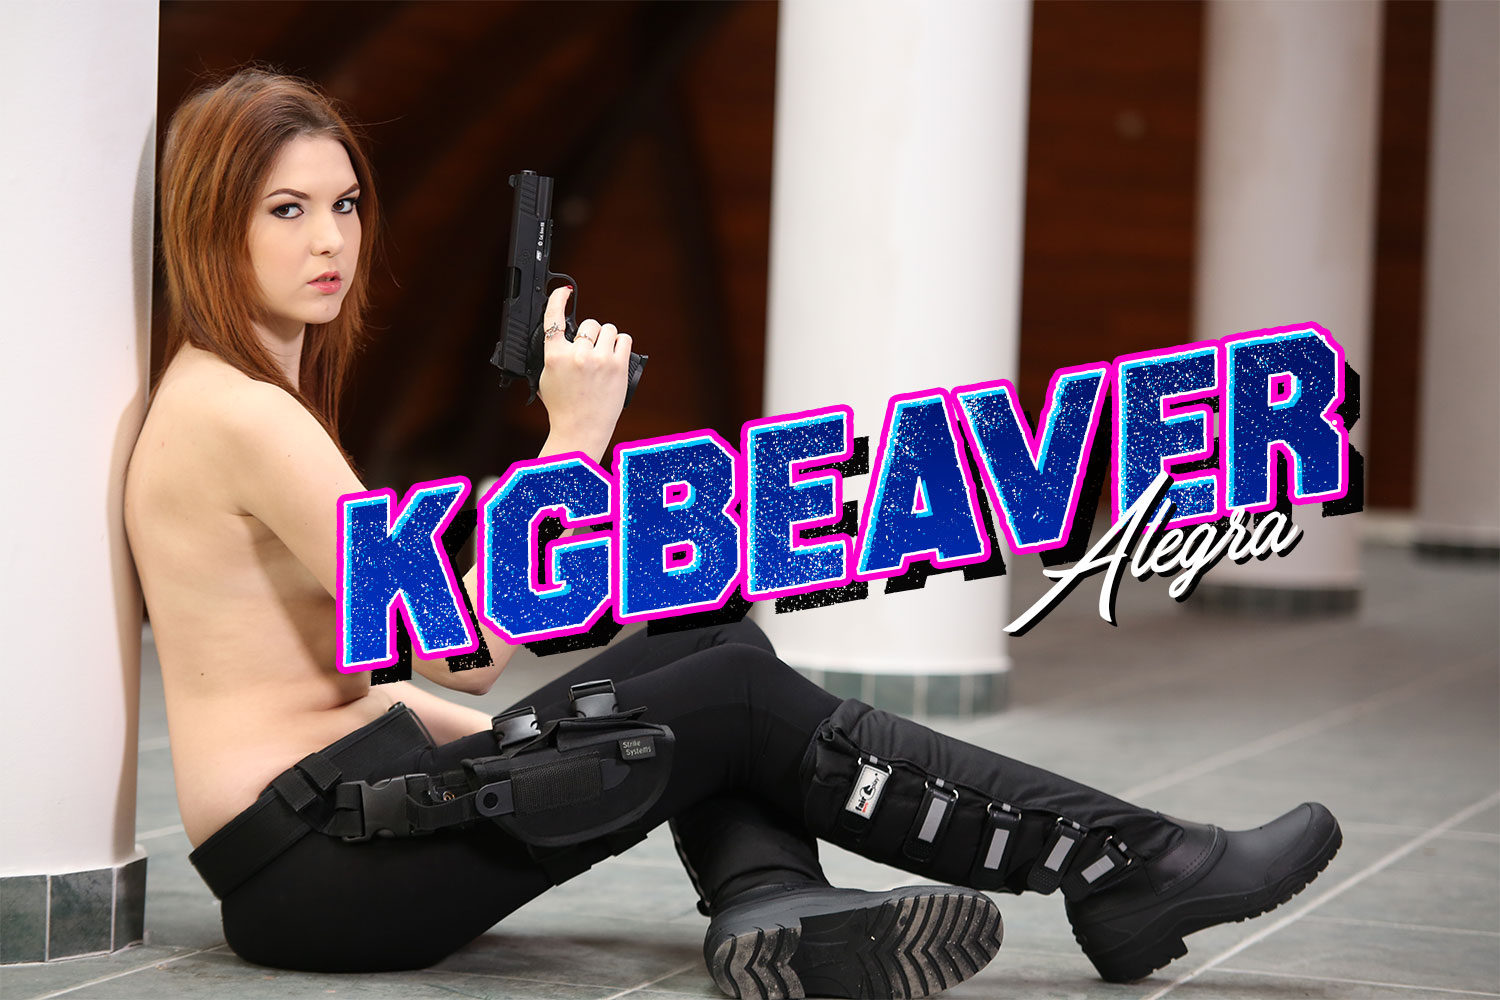 KGBeaver VR Porn Video